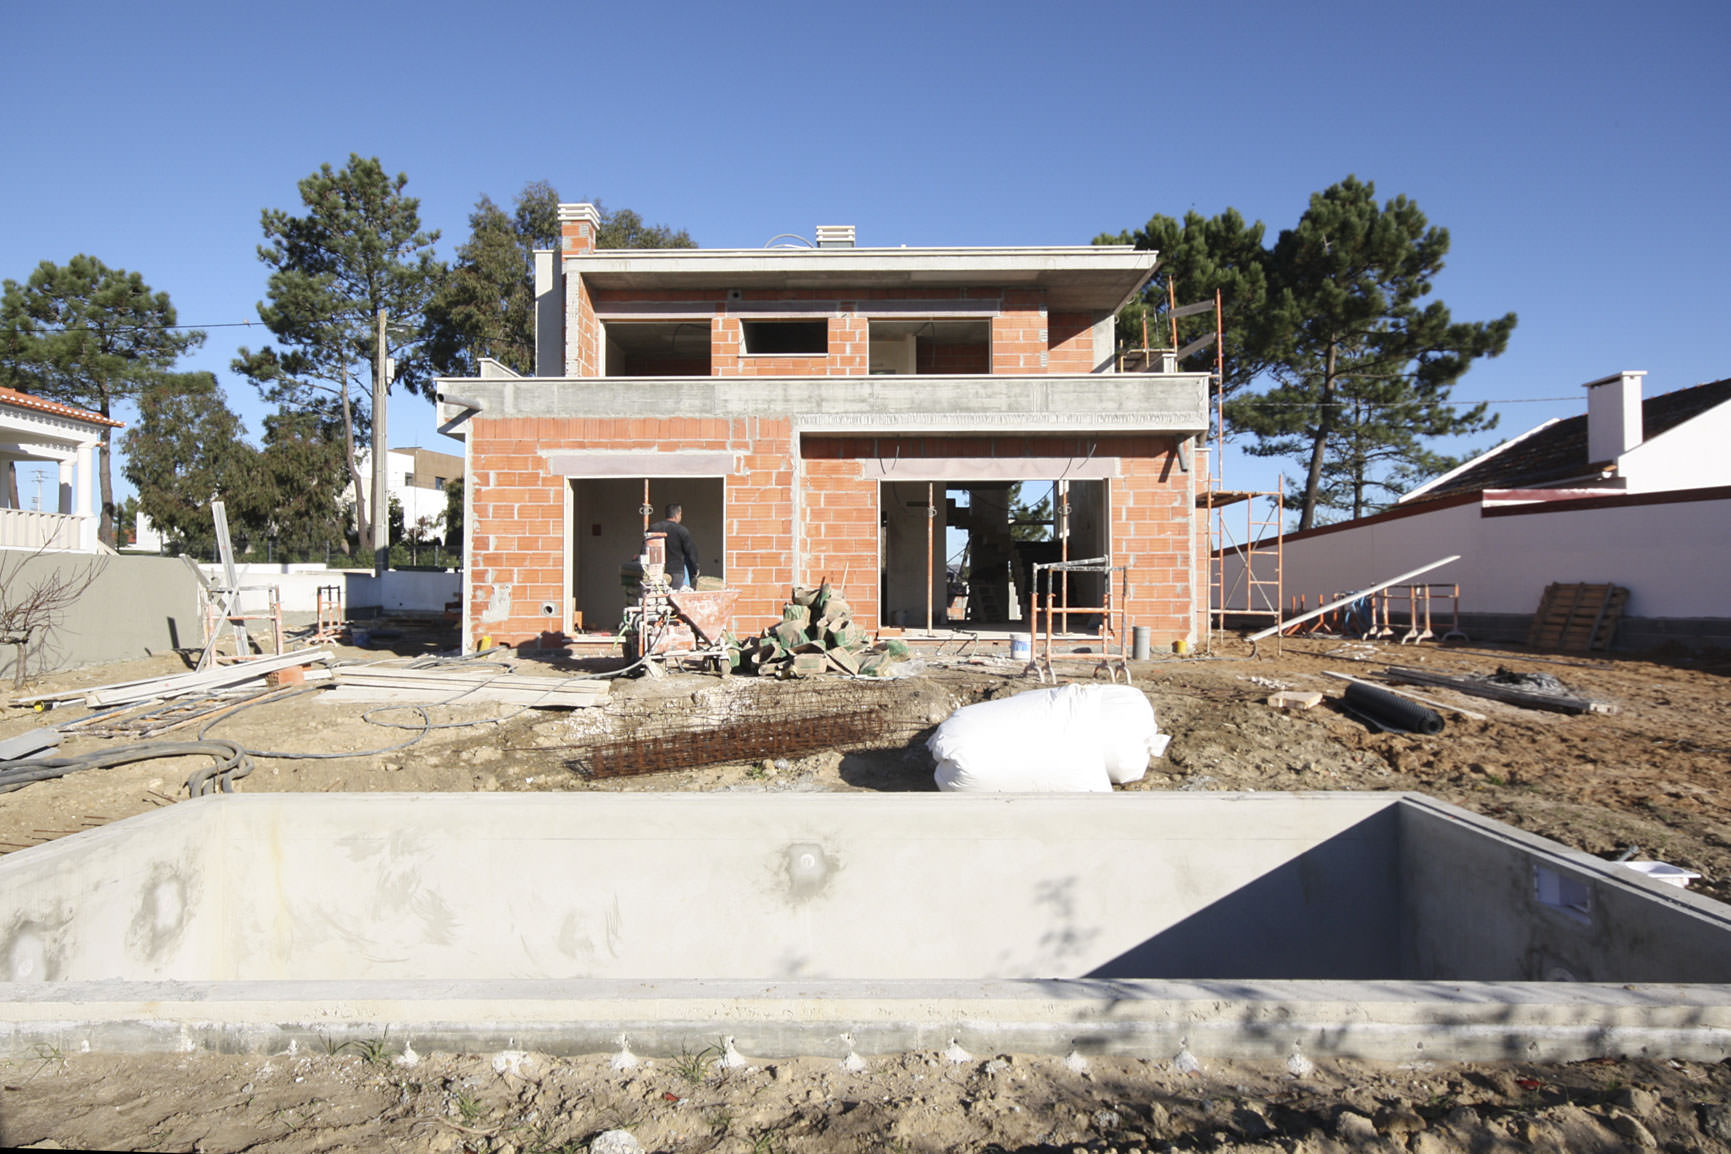 16-portugal-realty-silver-coast-property-for-sale-presprop-contsruction-new-build